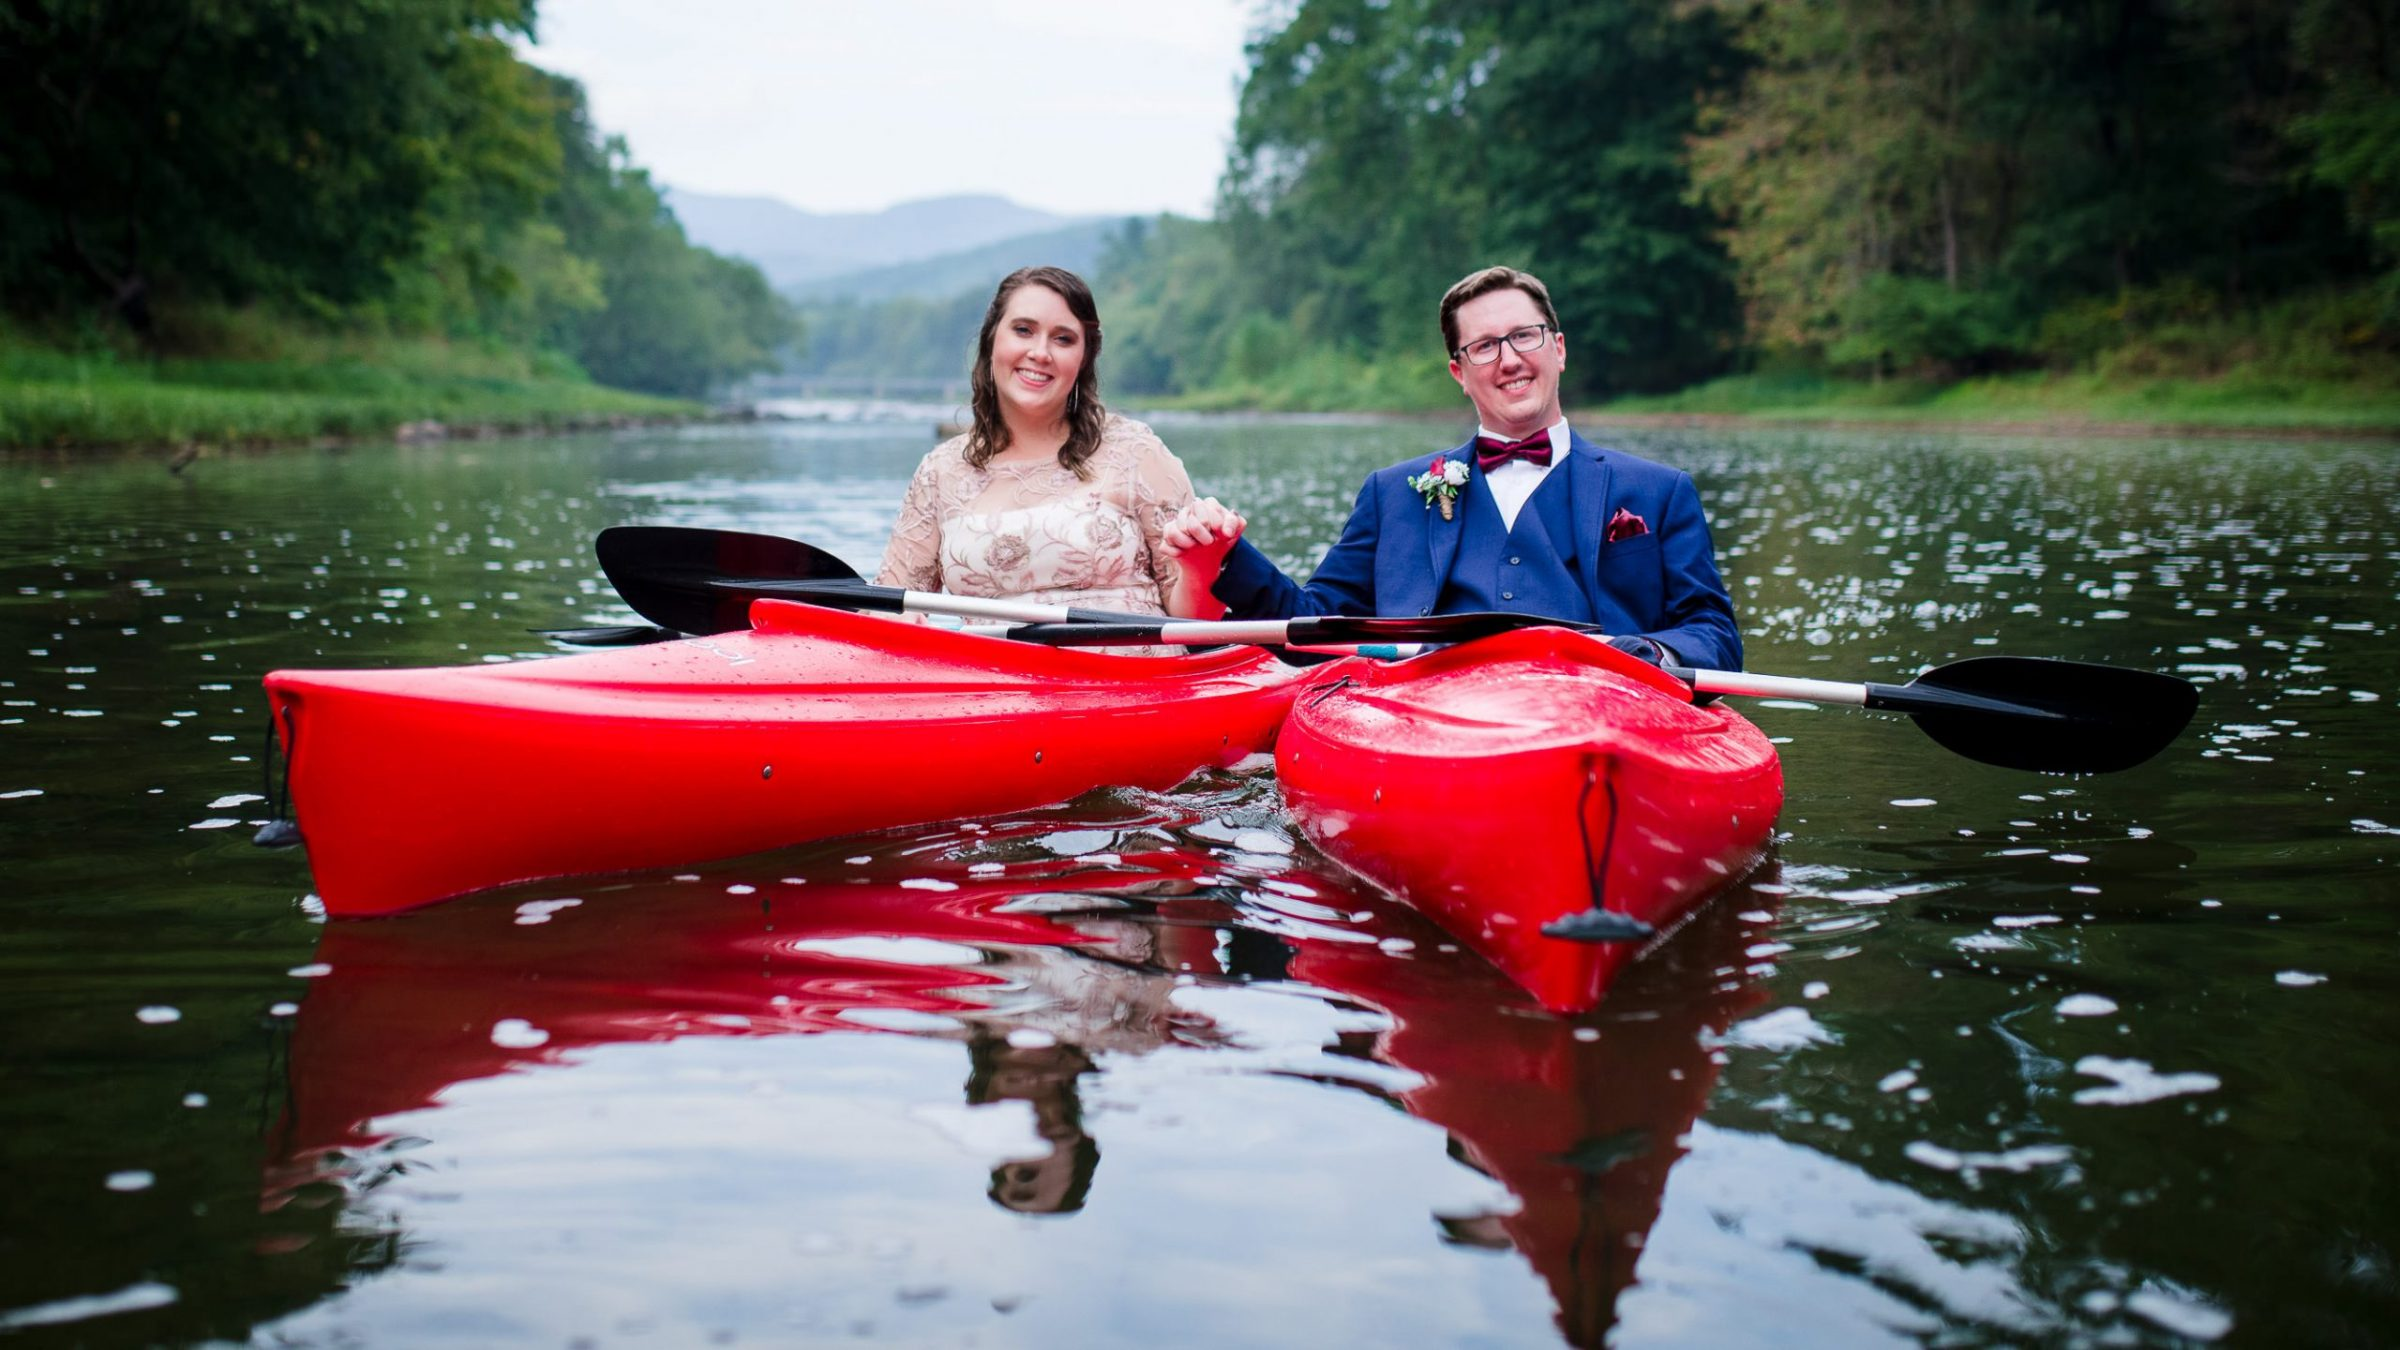 outdoor adventure kayak wedding